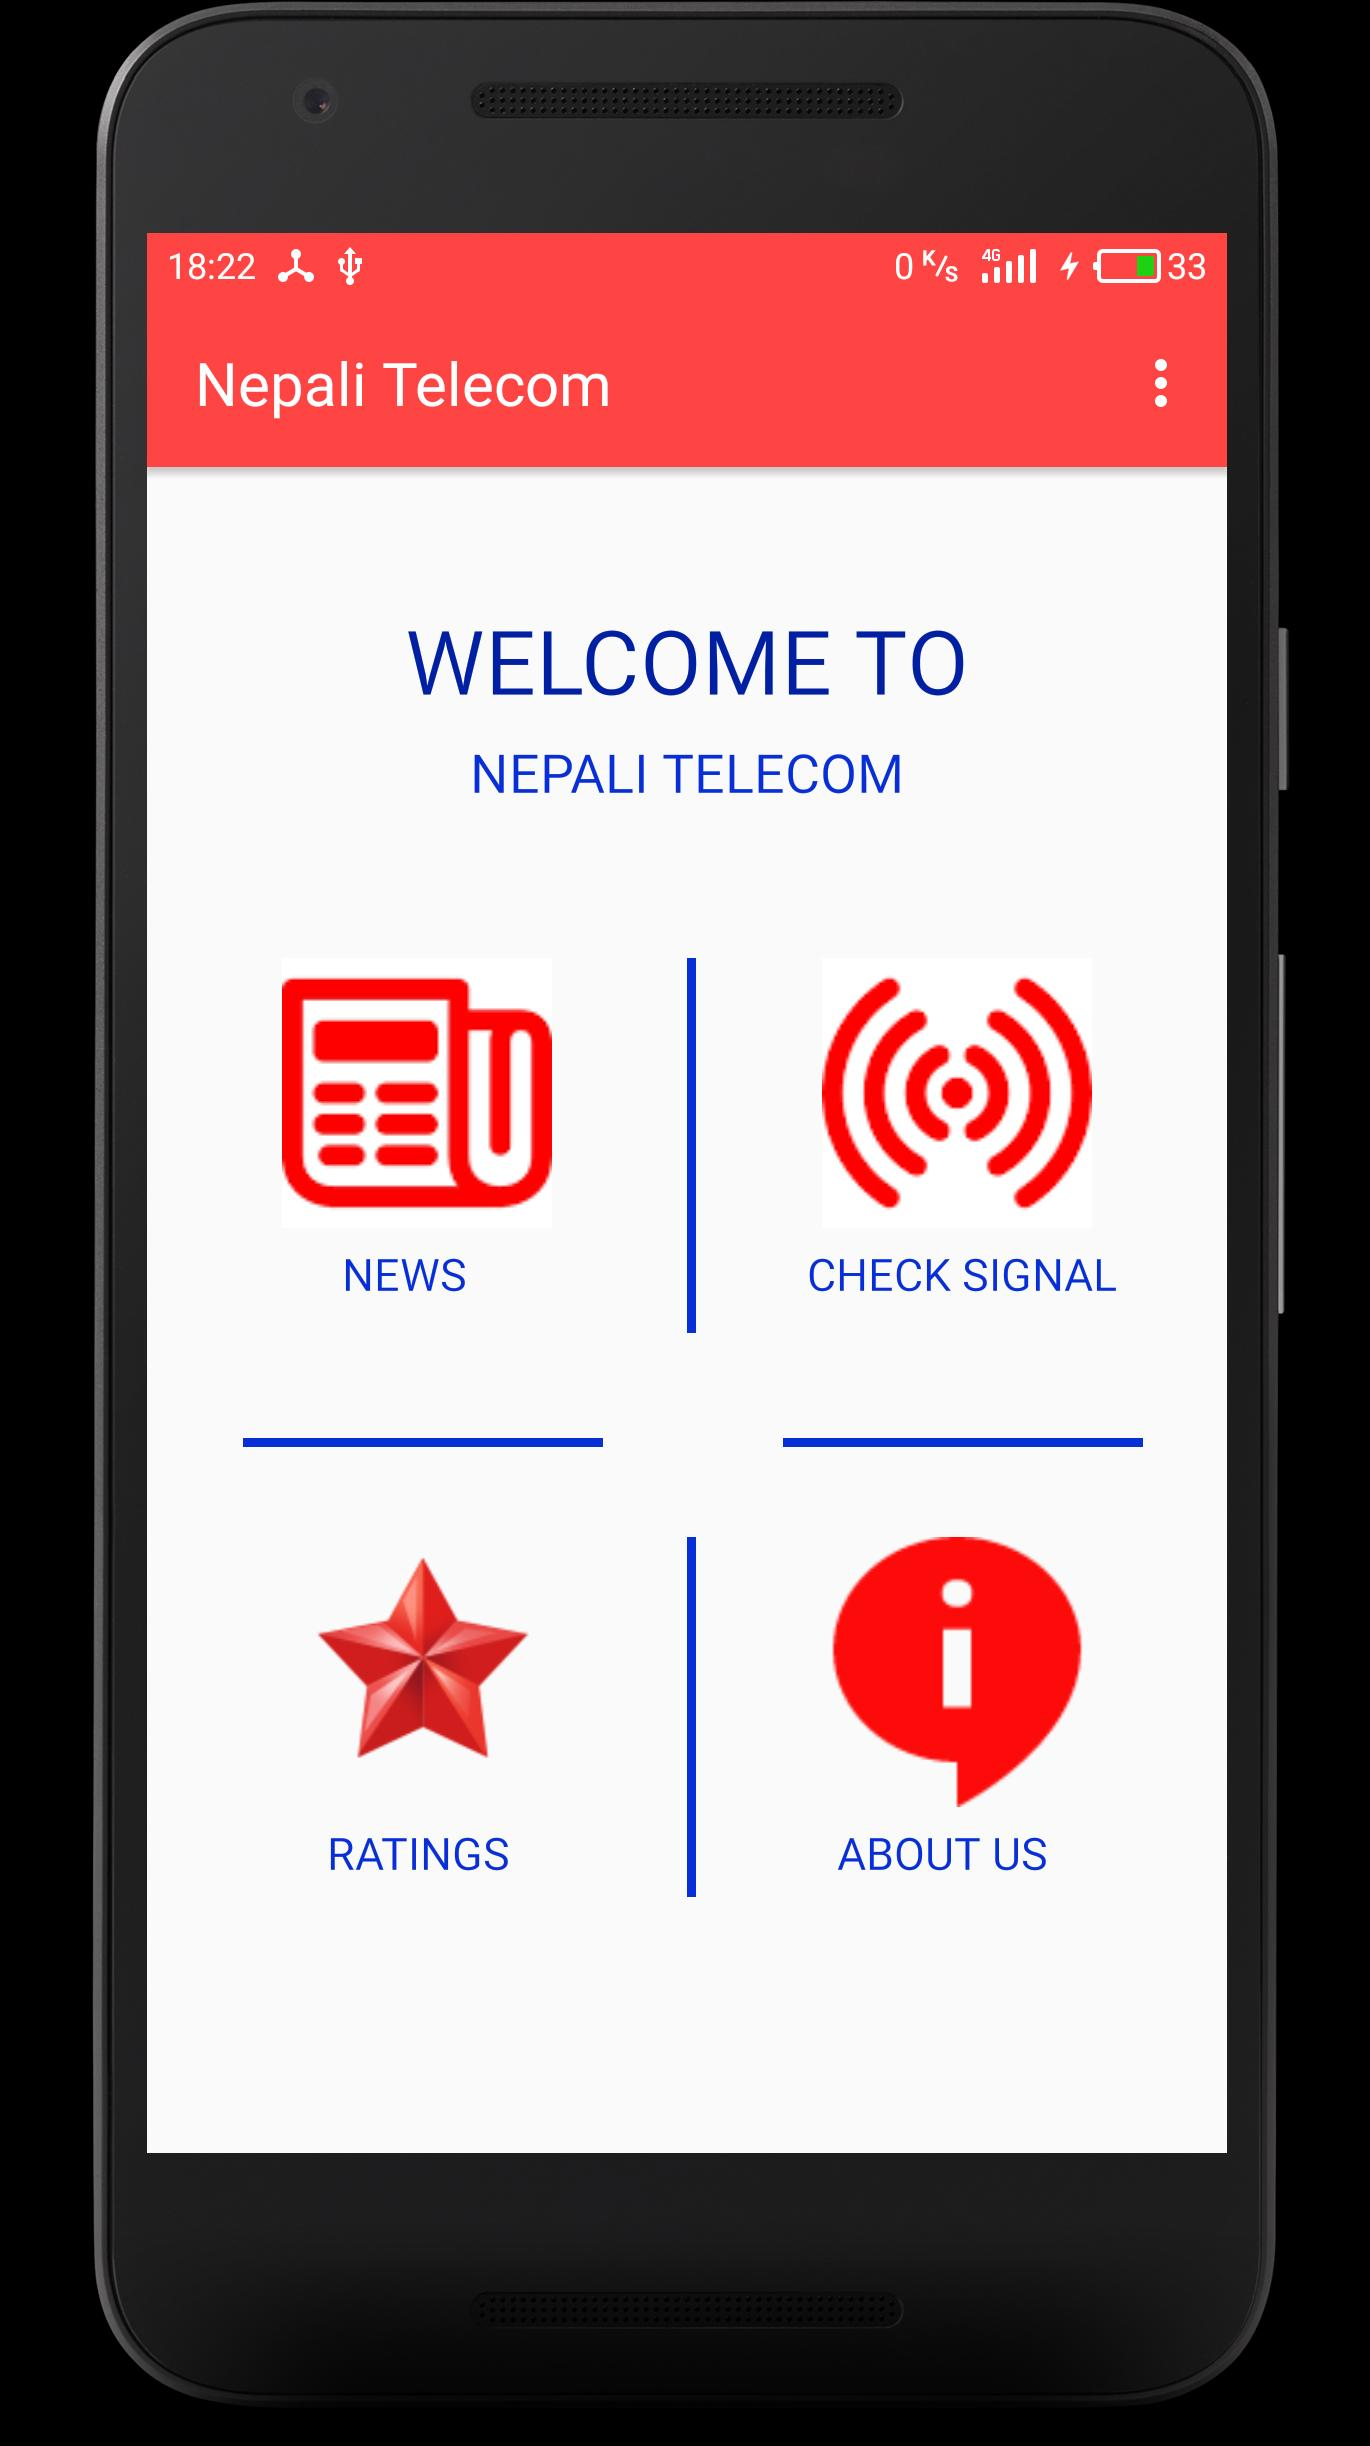 Nepali Telecom for Android - APK Download